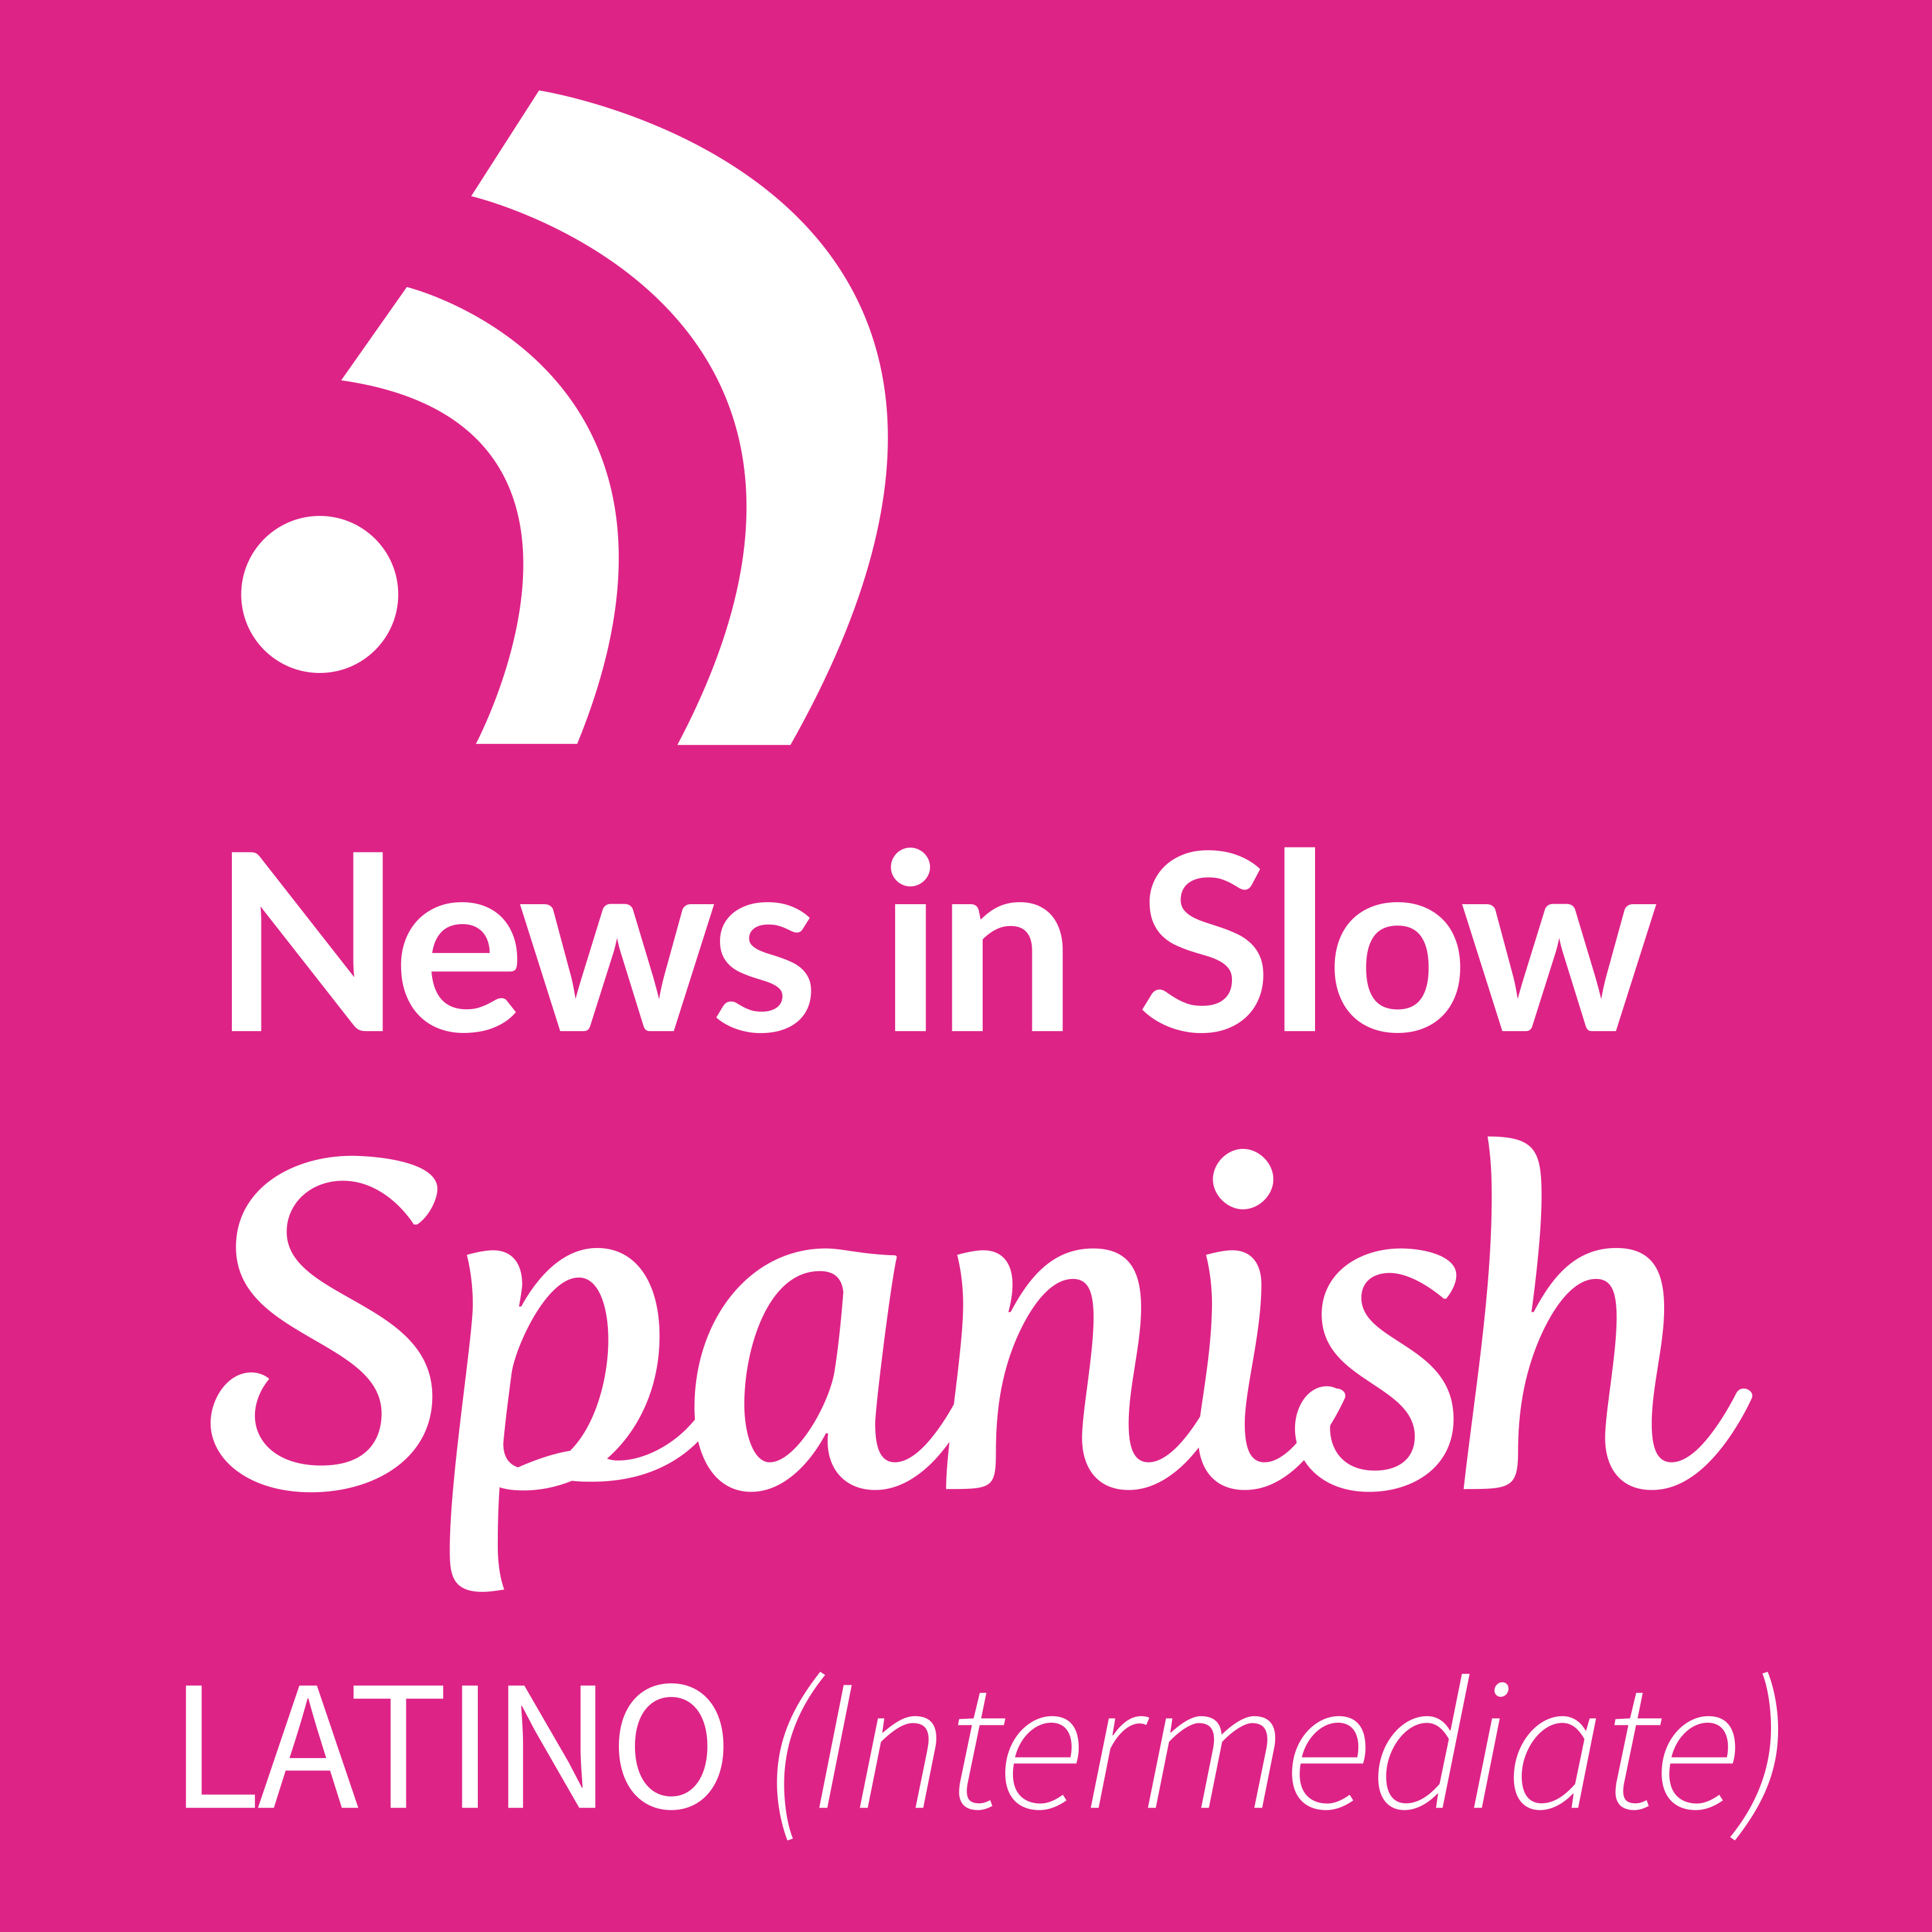 News in Slow Spanish Latino - # 153 - Spanish grammar, news and expressions